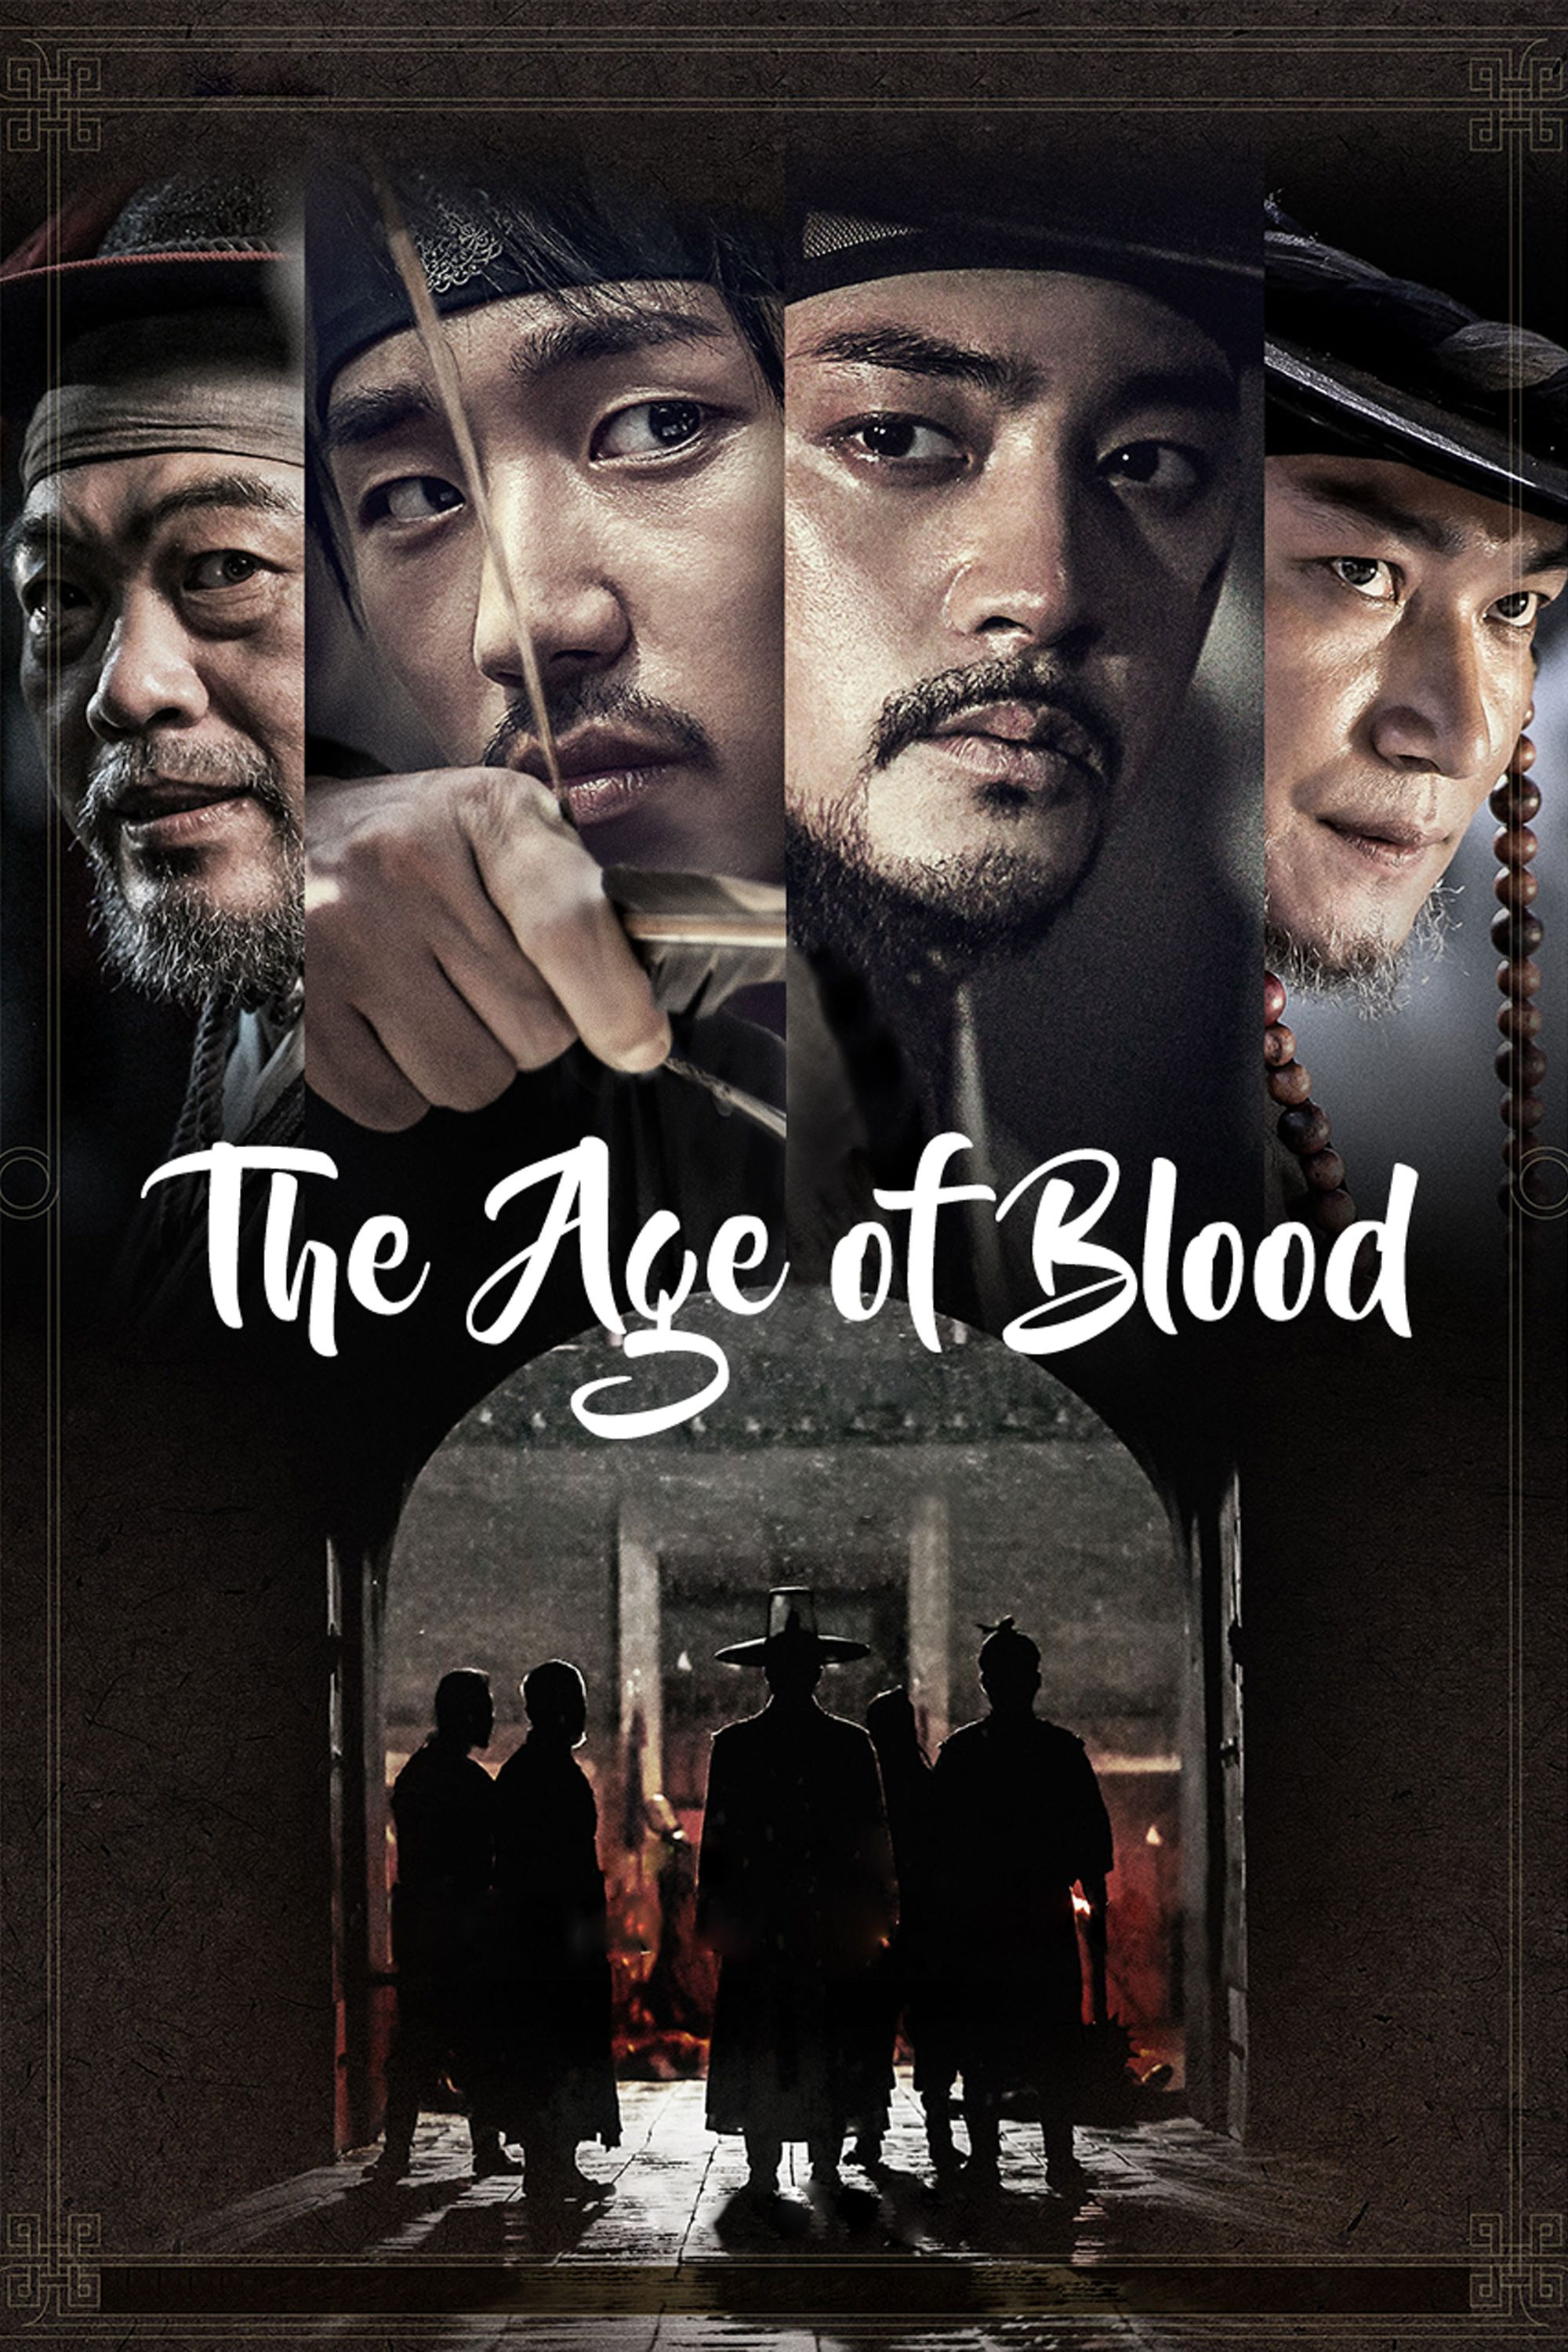 The Age of Blood - 역모- 반란의 시대 - Watch Full Movie Free - Korea - Movie -  Rakuten Viki